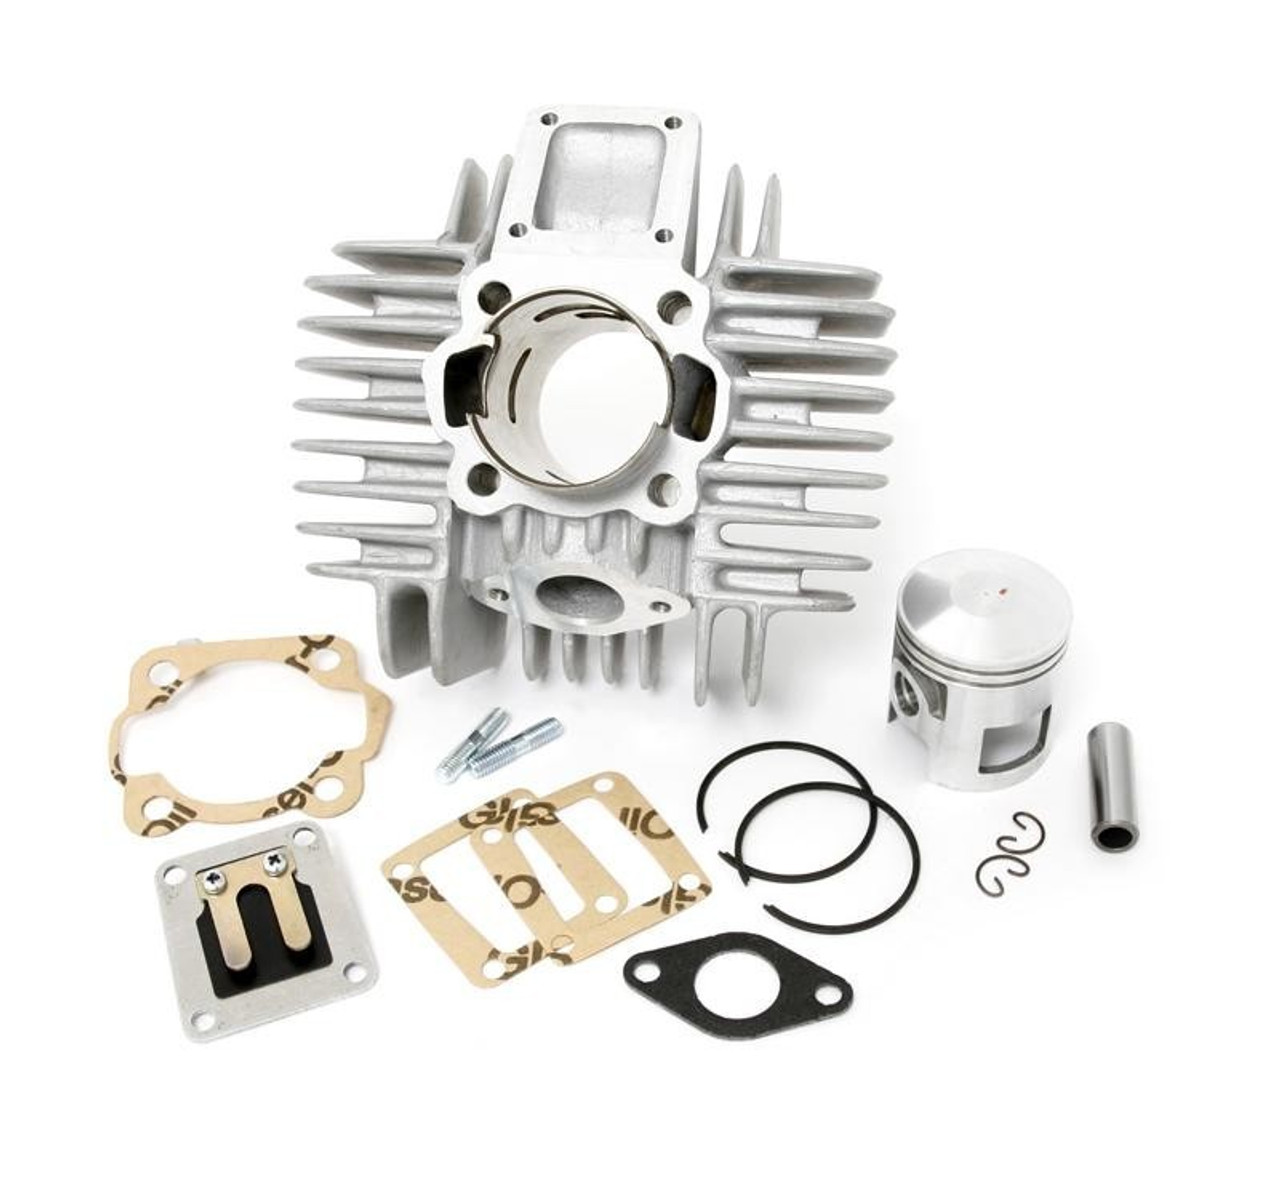 Tomos A3 Airsal 44mm 70cc Moped Cylinder Kit - 10mm Wrist pin